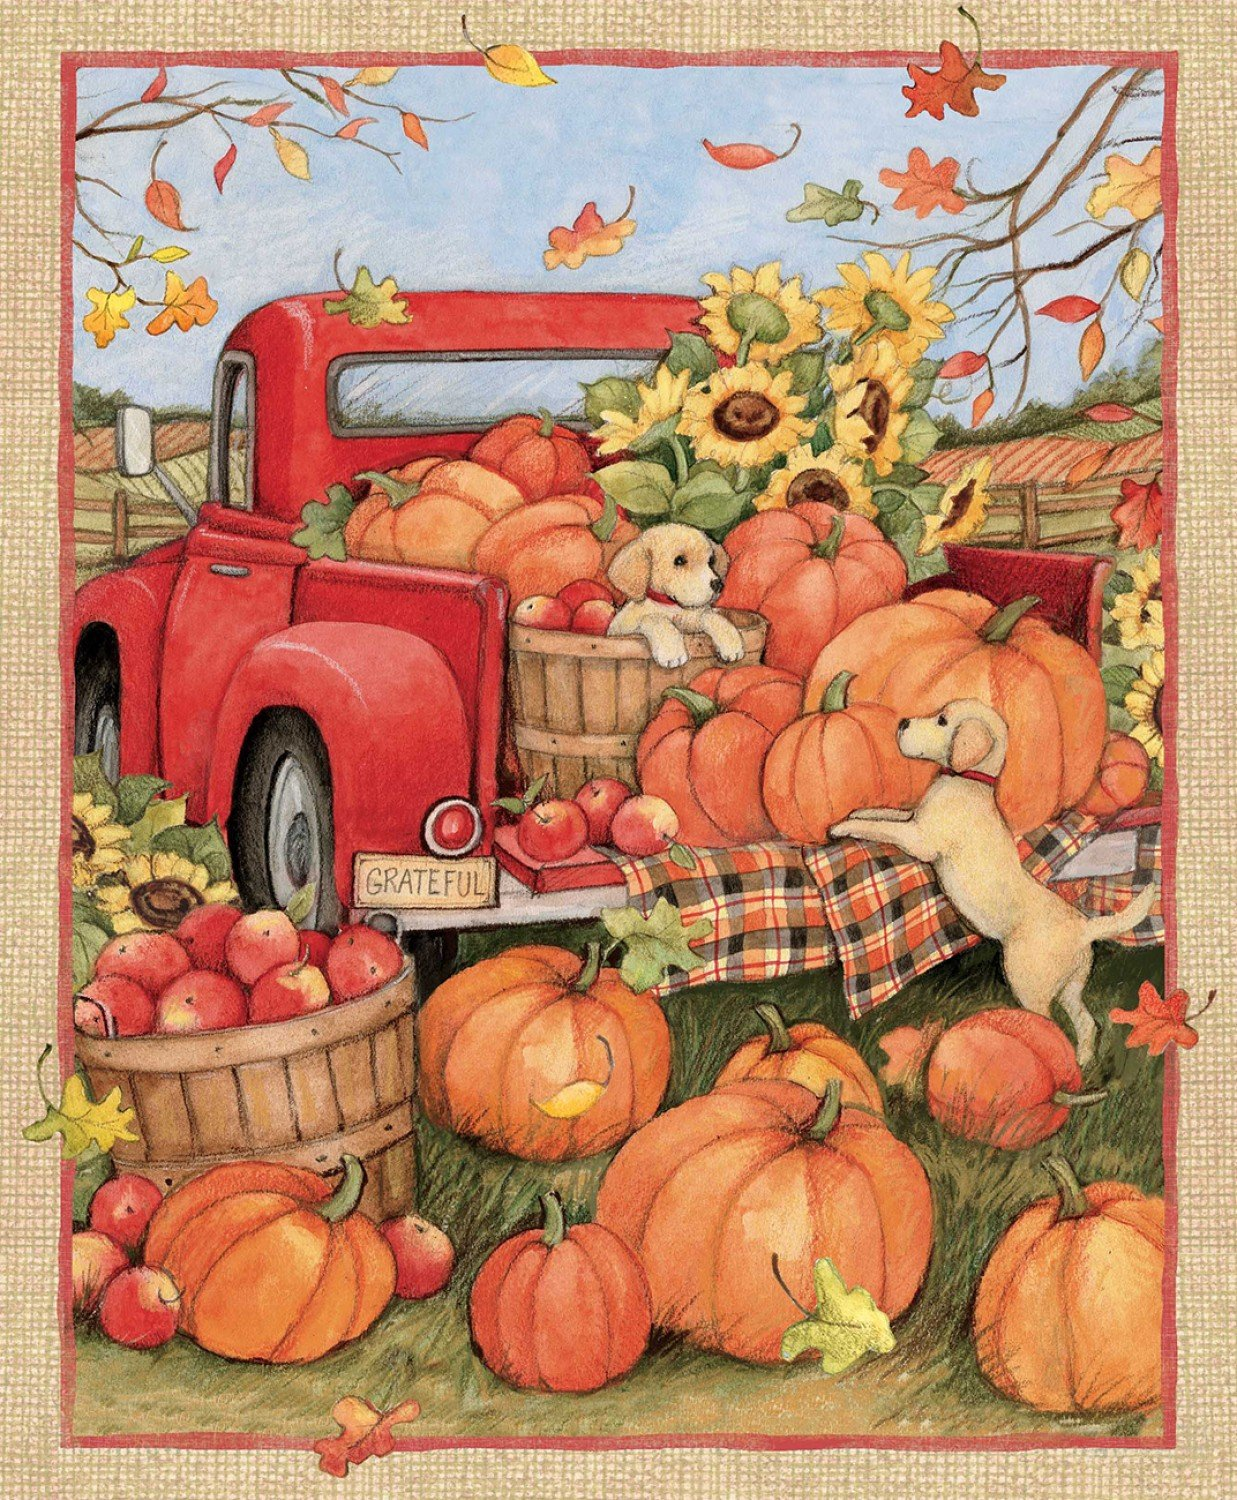 Harvest Red Truck Pumpkins & Puppies by Susan Winget for Springs Creative Collection 68778A620715